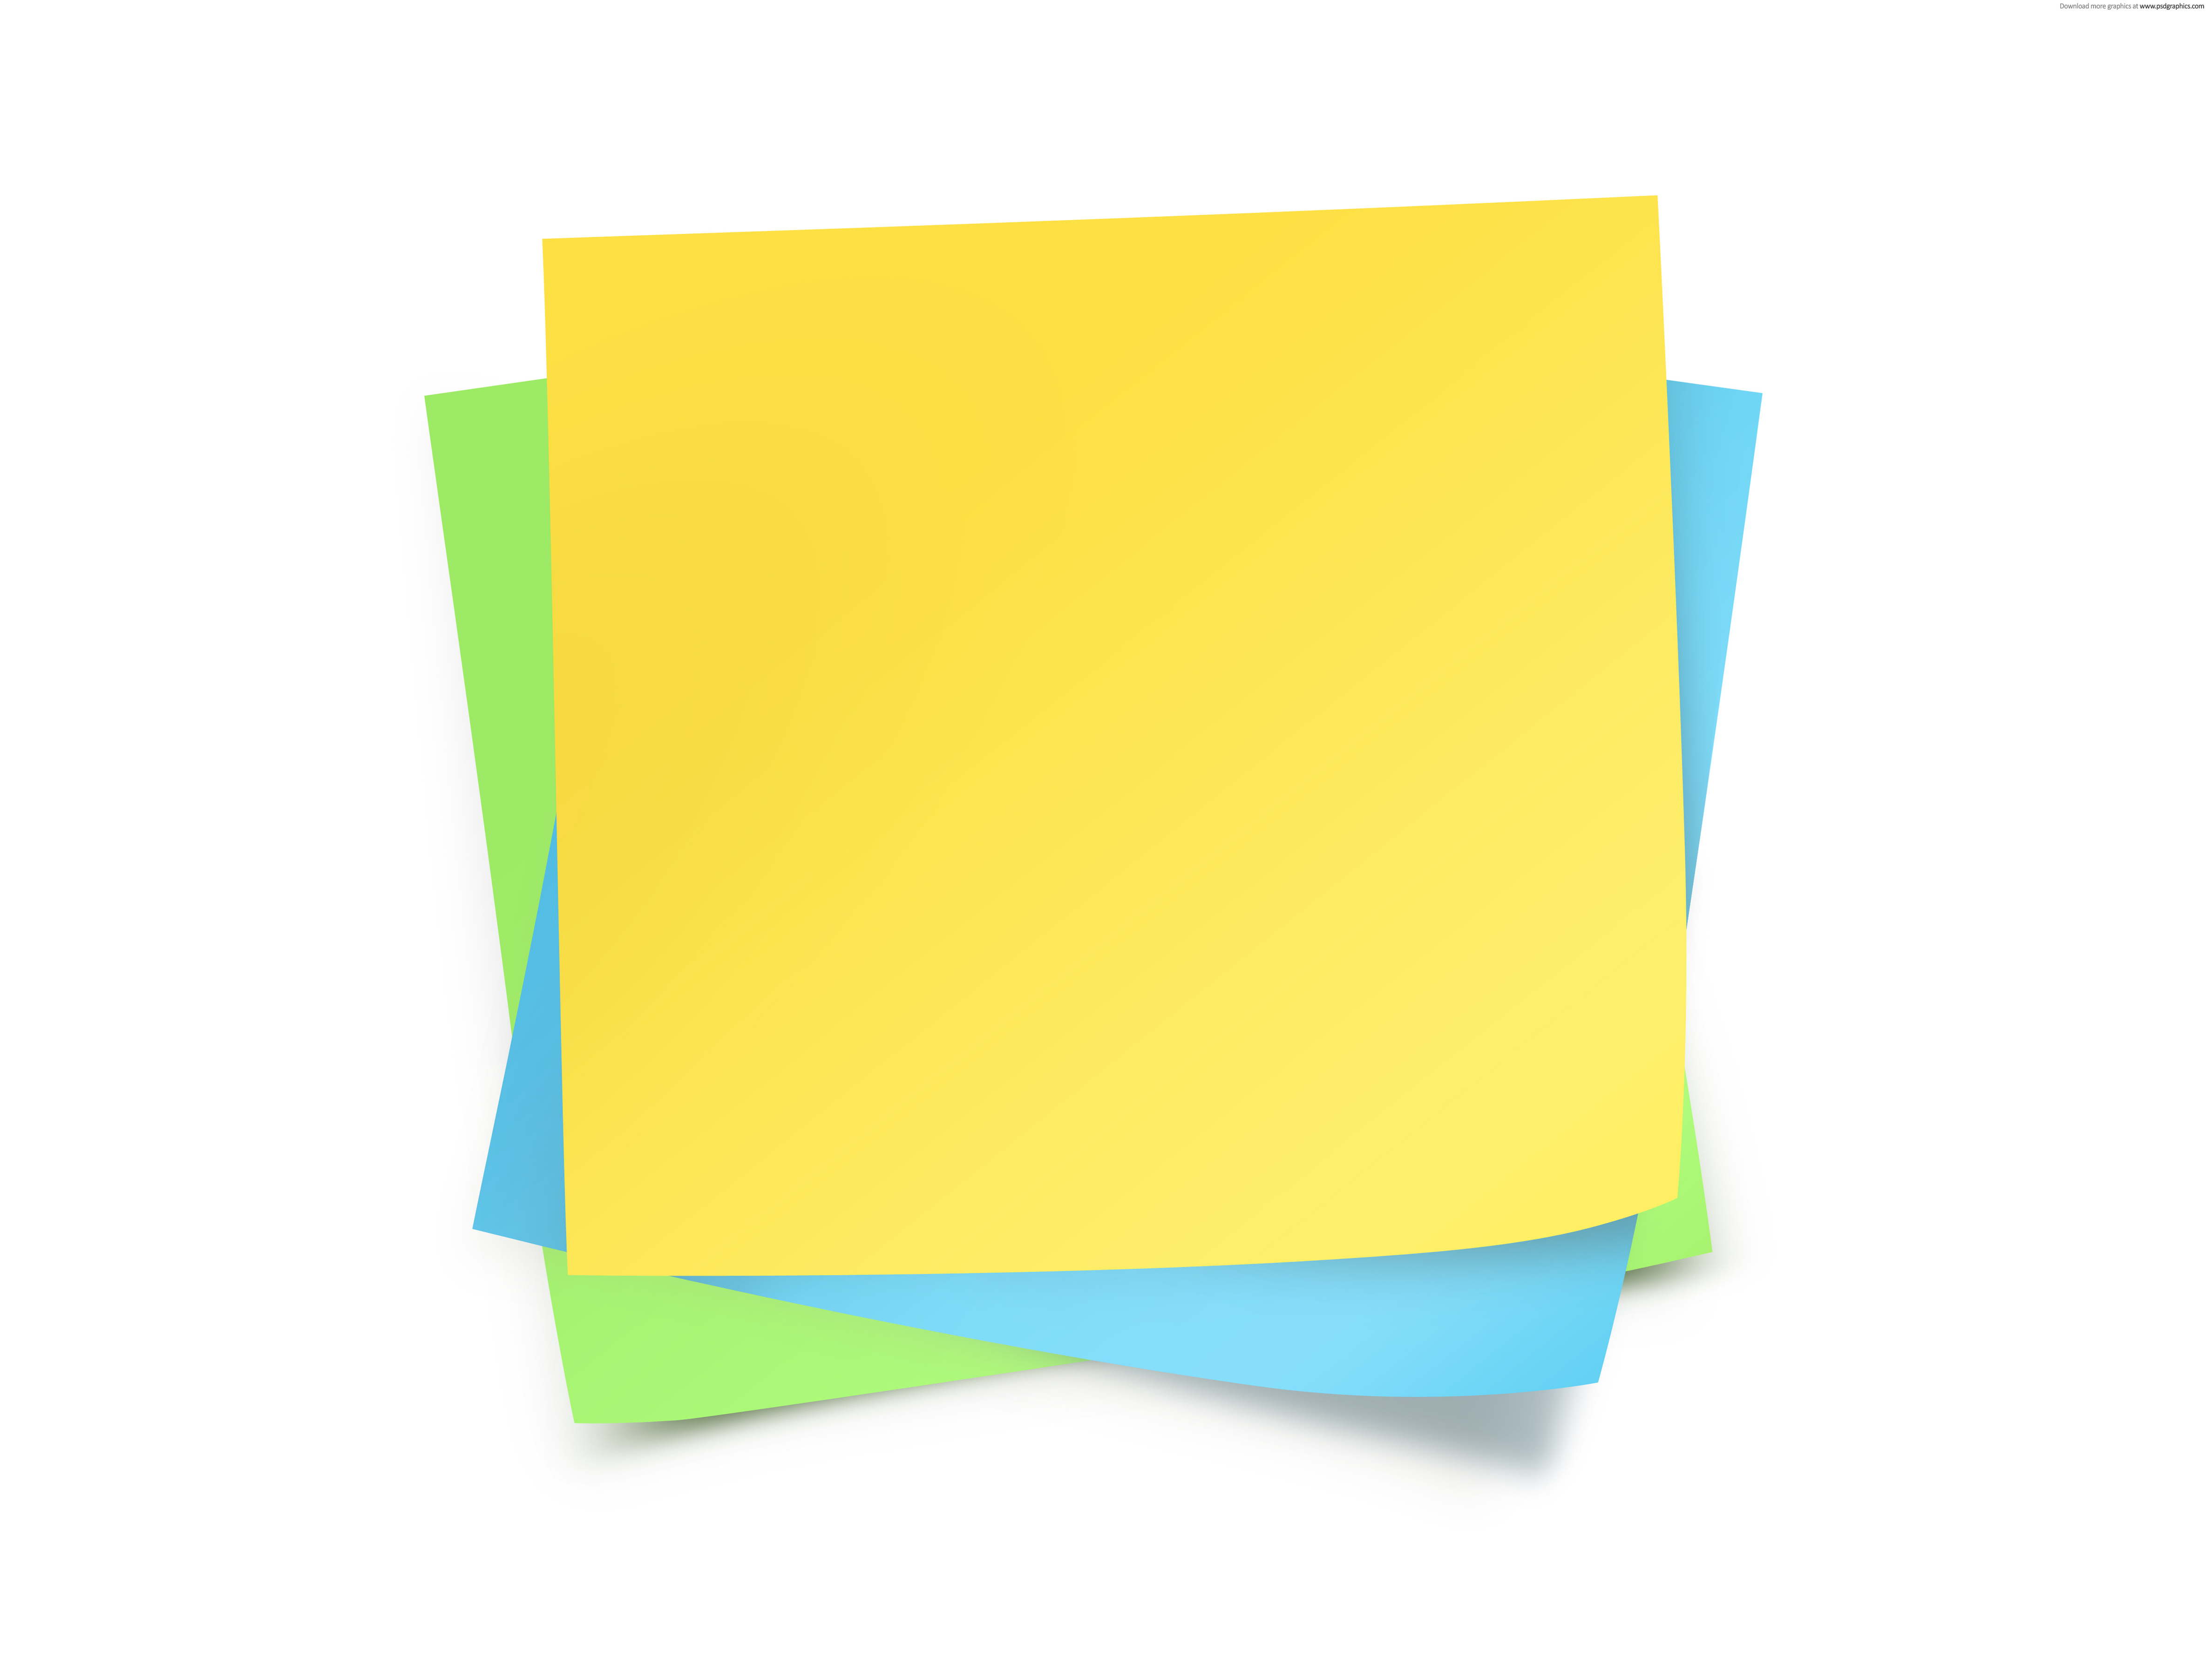 Post it notes images clipart free to use clip art resource.